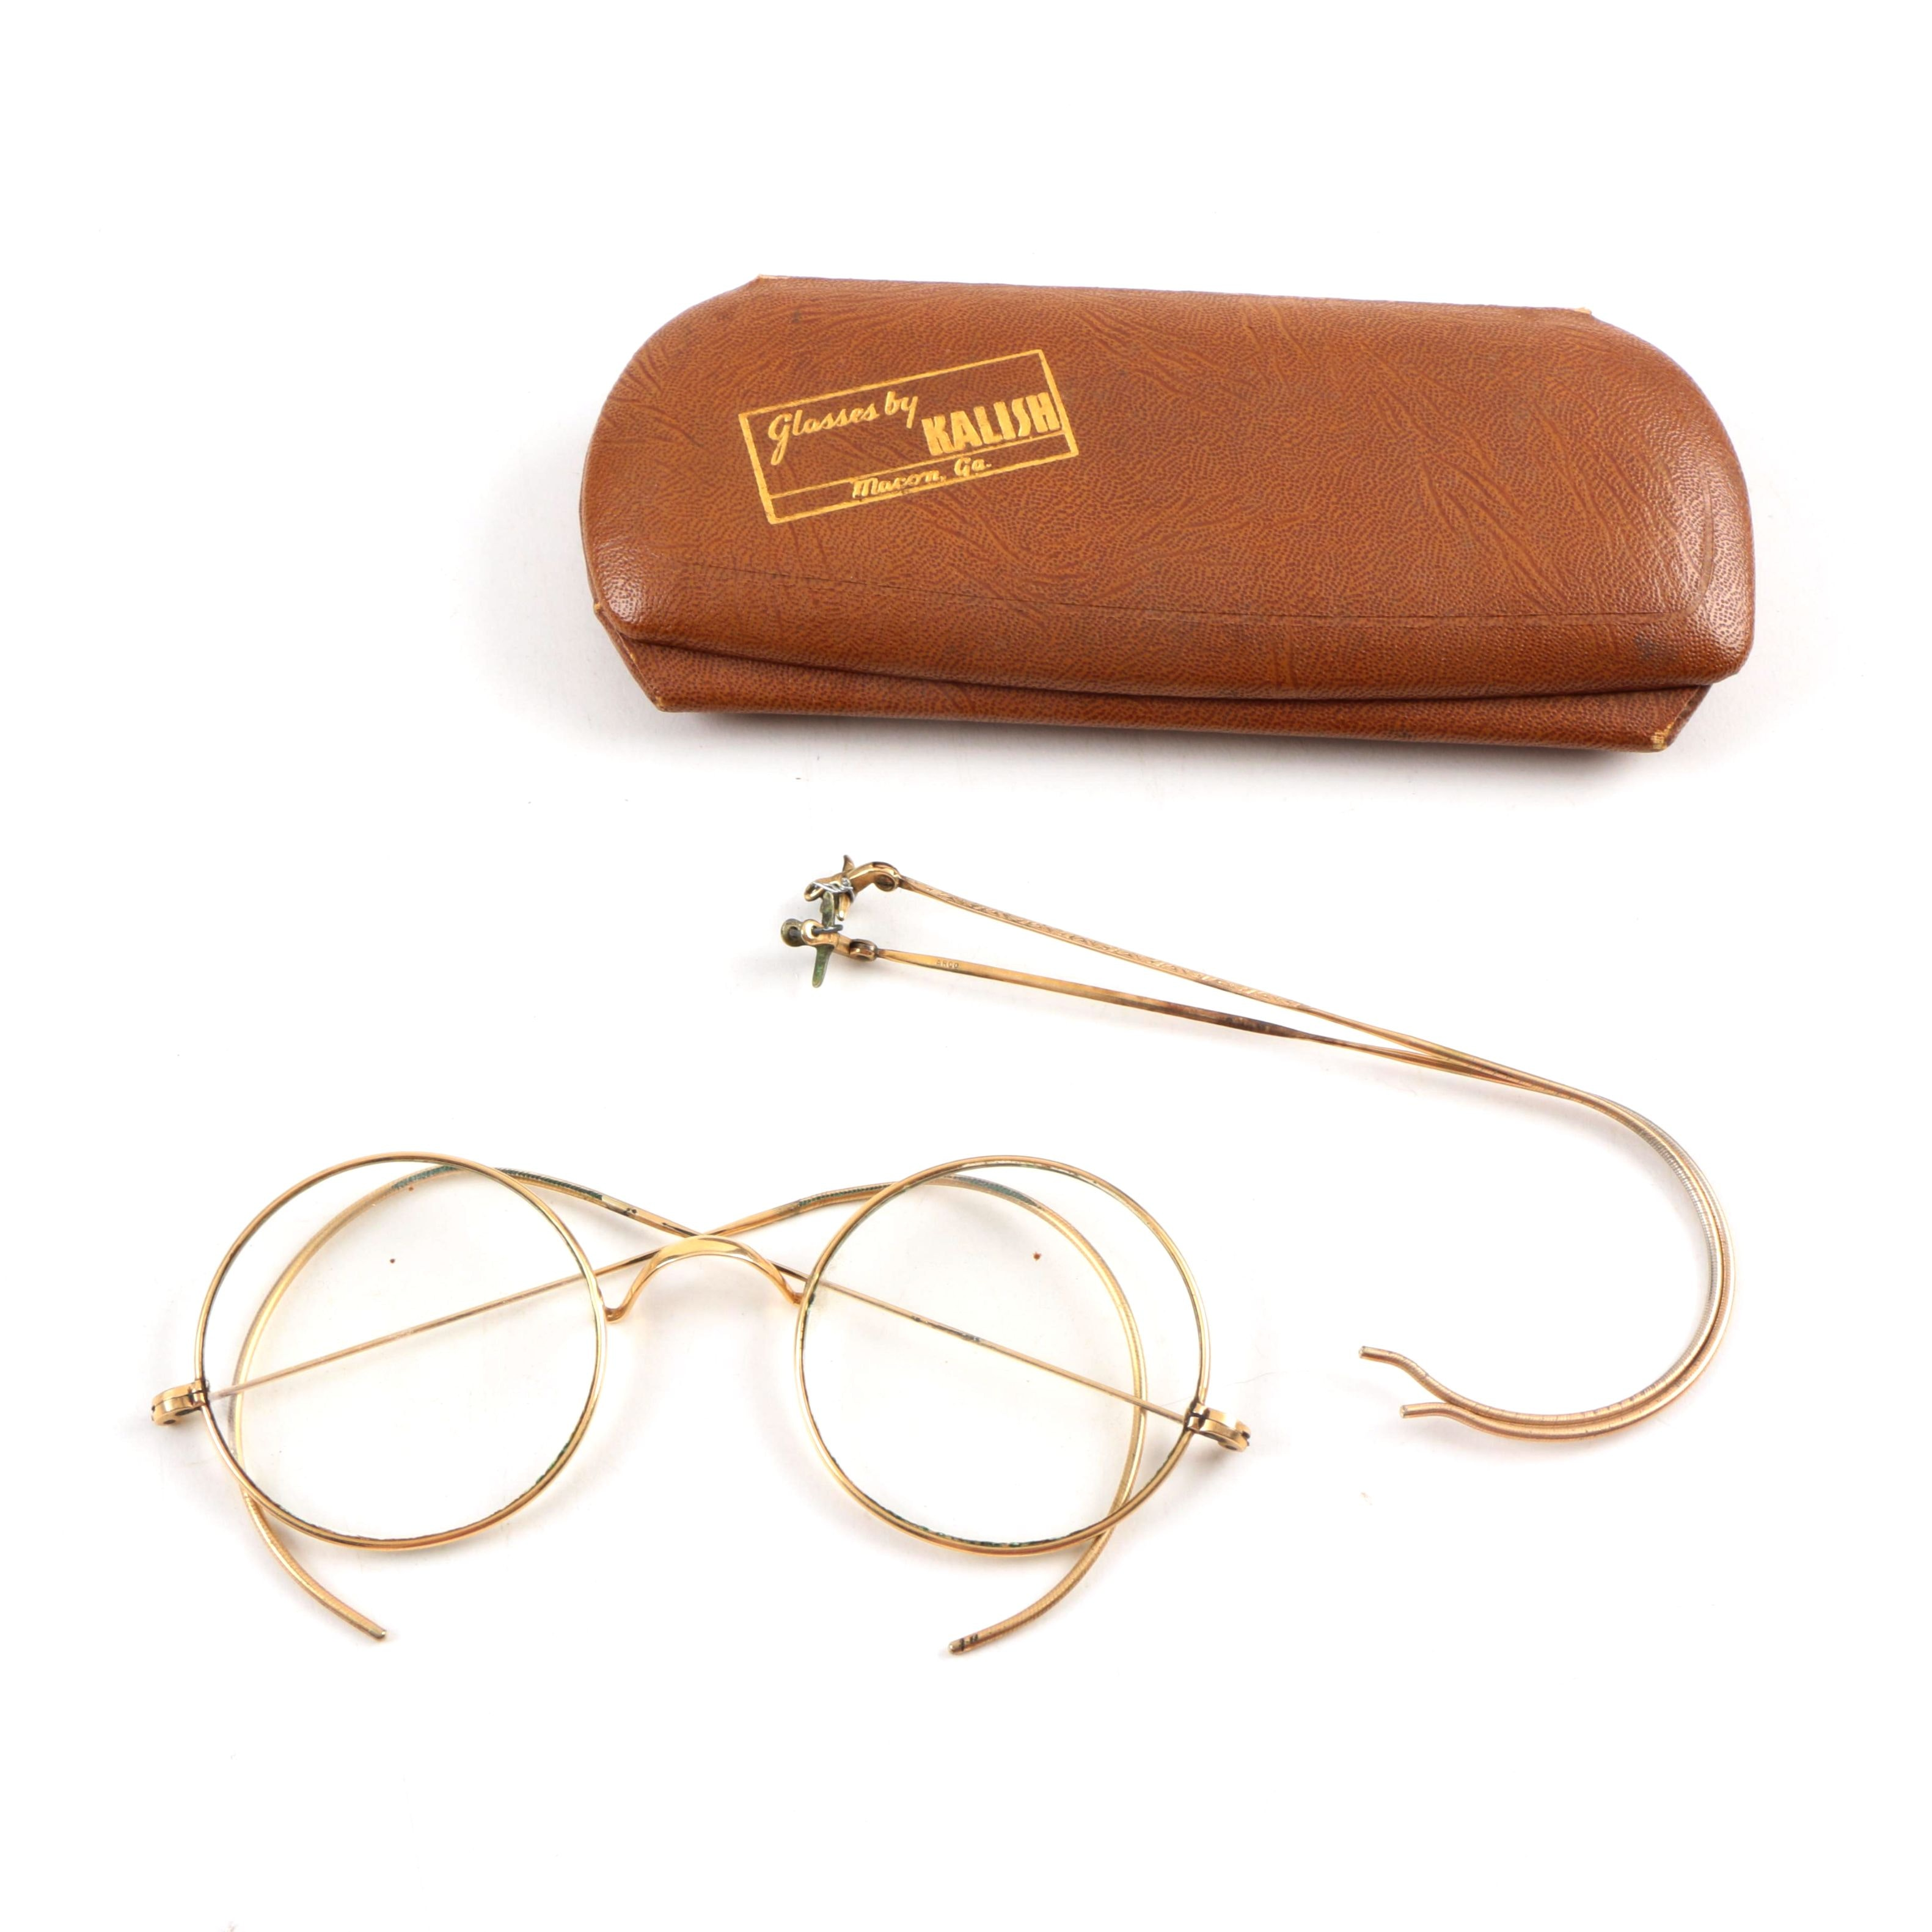 Vintage 1940's Arco Gold Plated Reading Glasses with Extra Side Frames